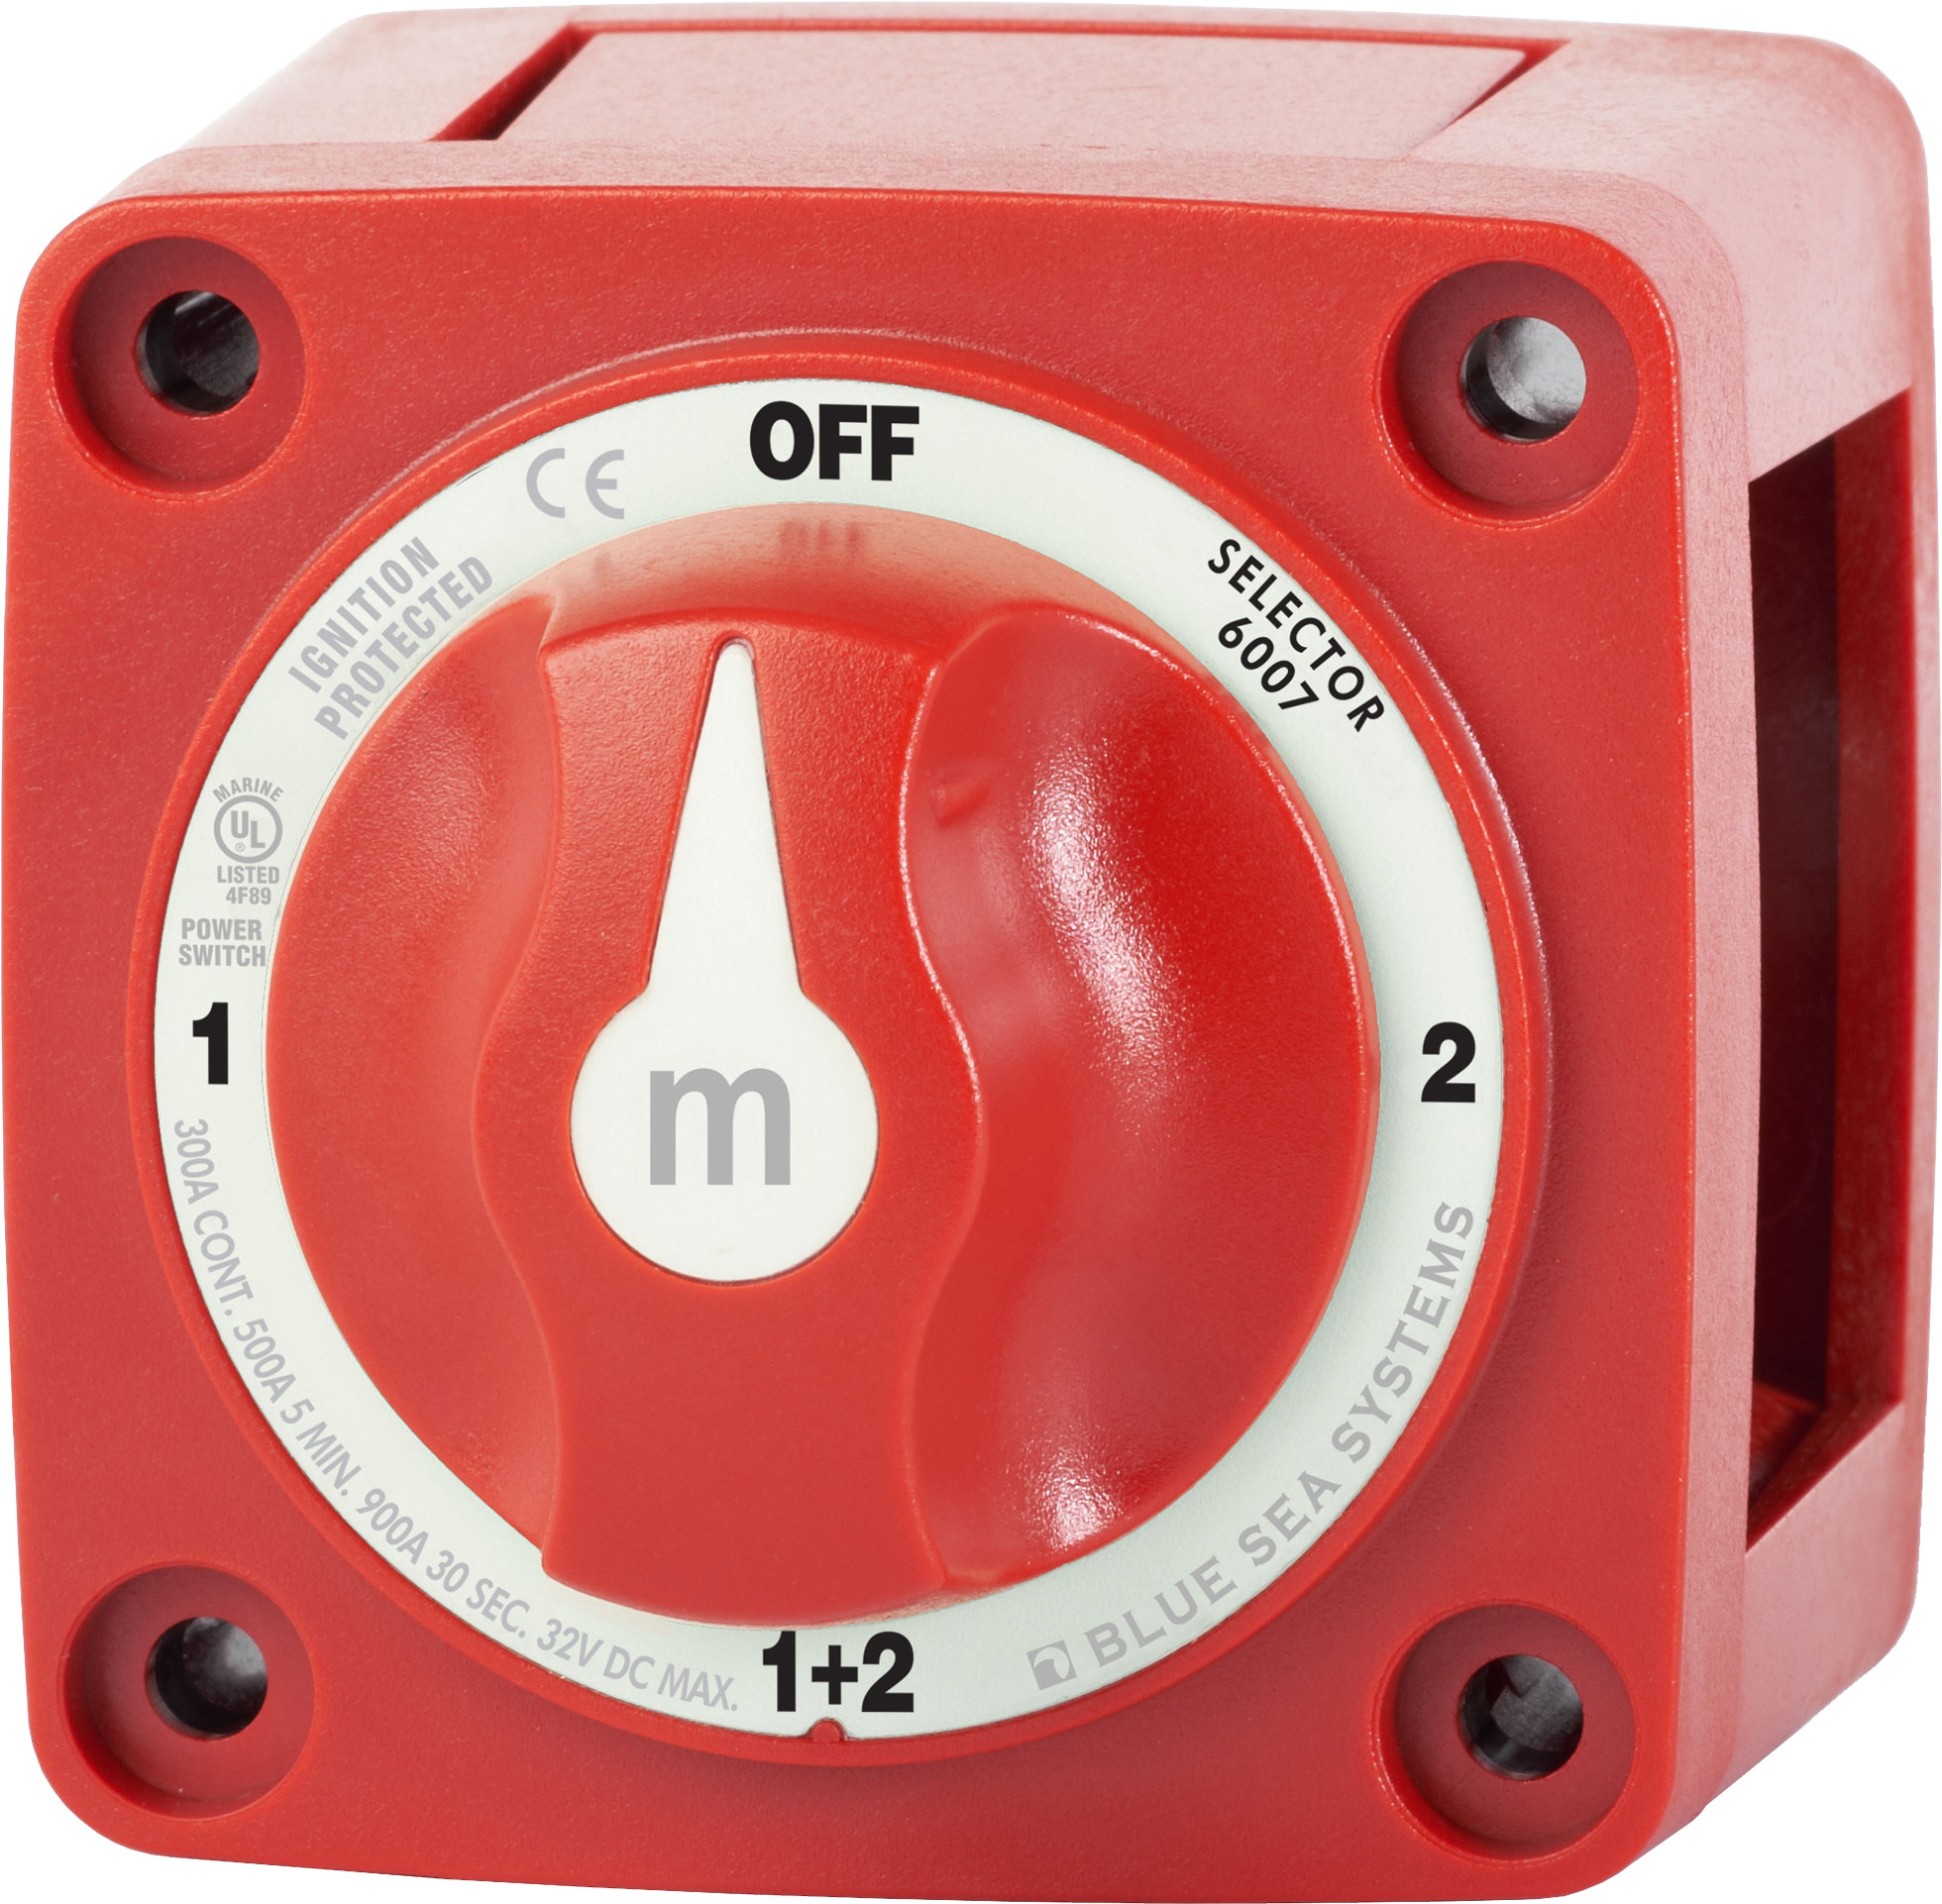 m-Series Mini Selector Battery Switch - Red - Blue Sea Systems